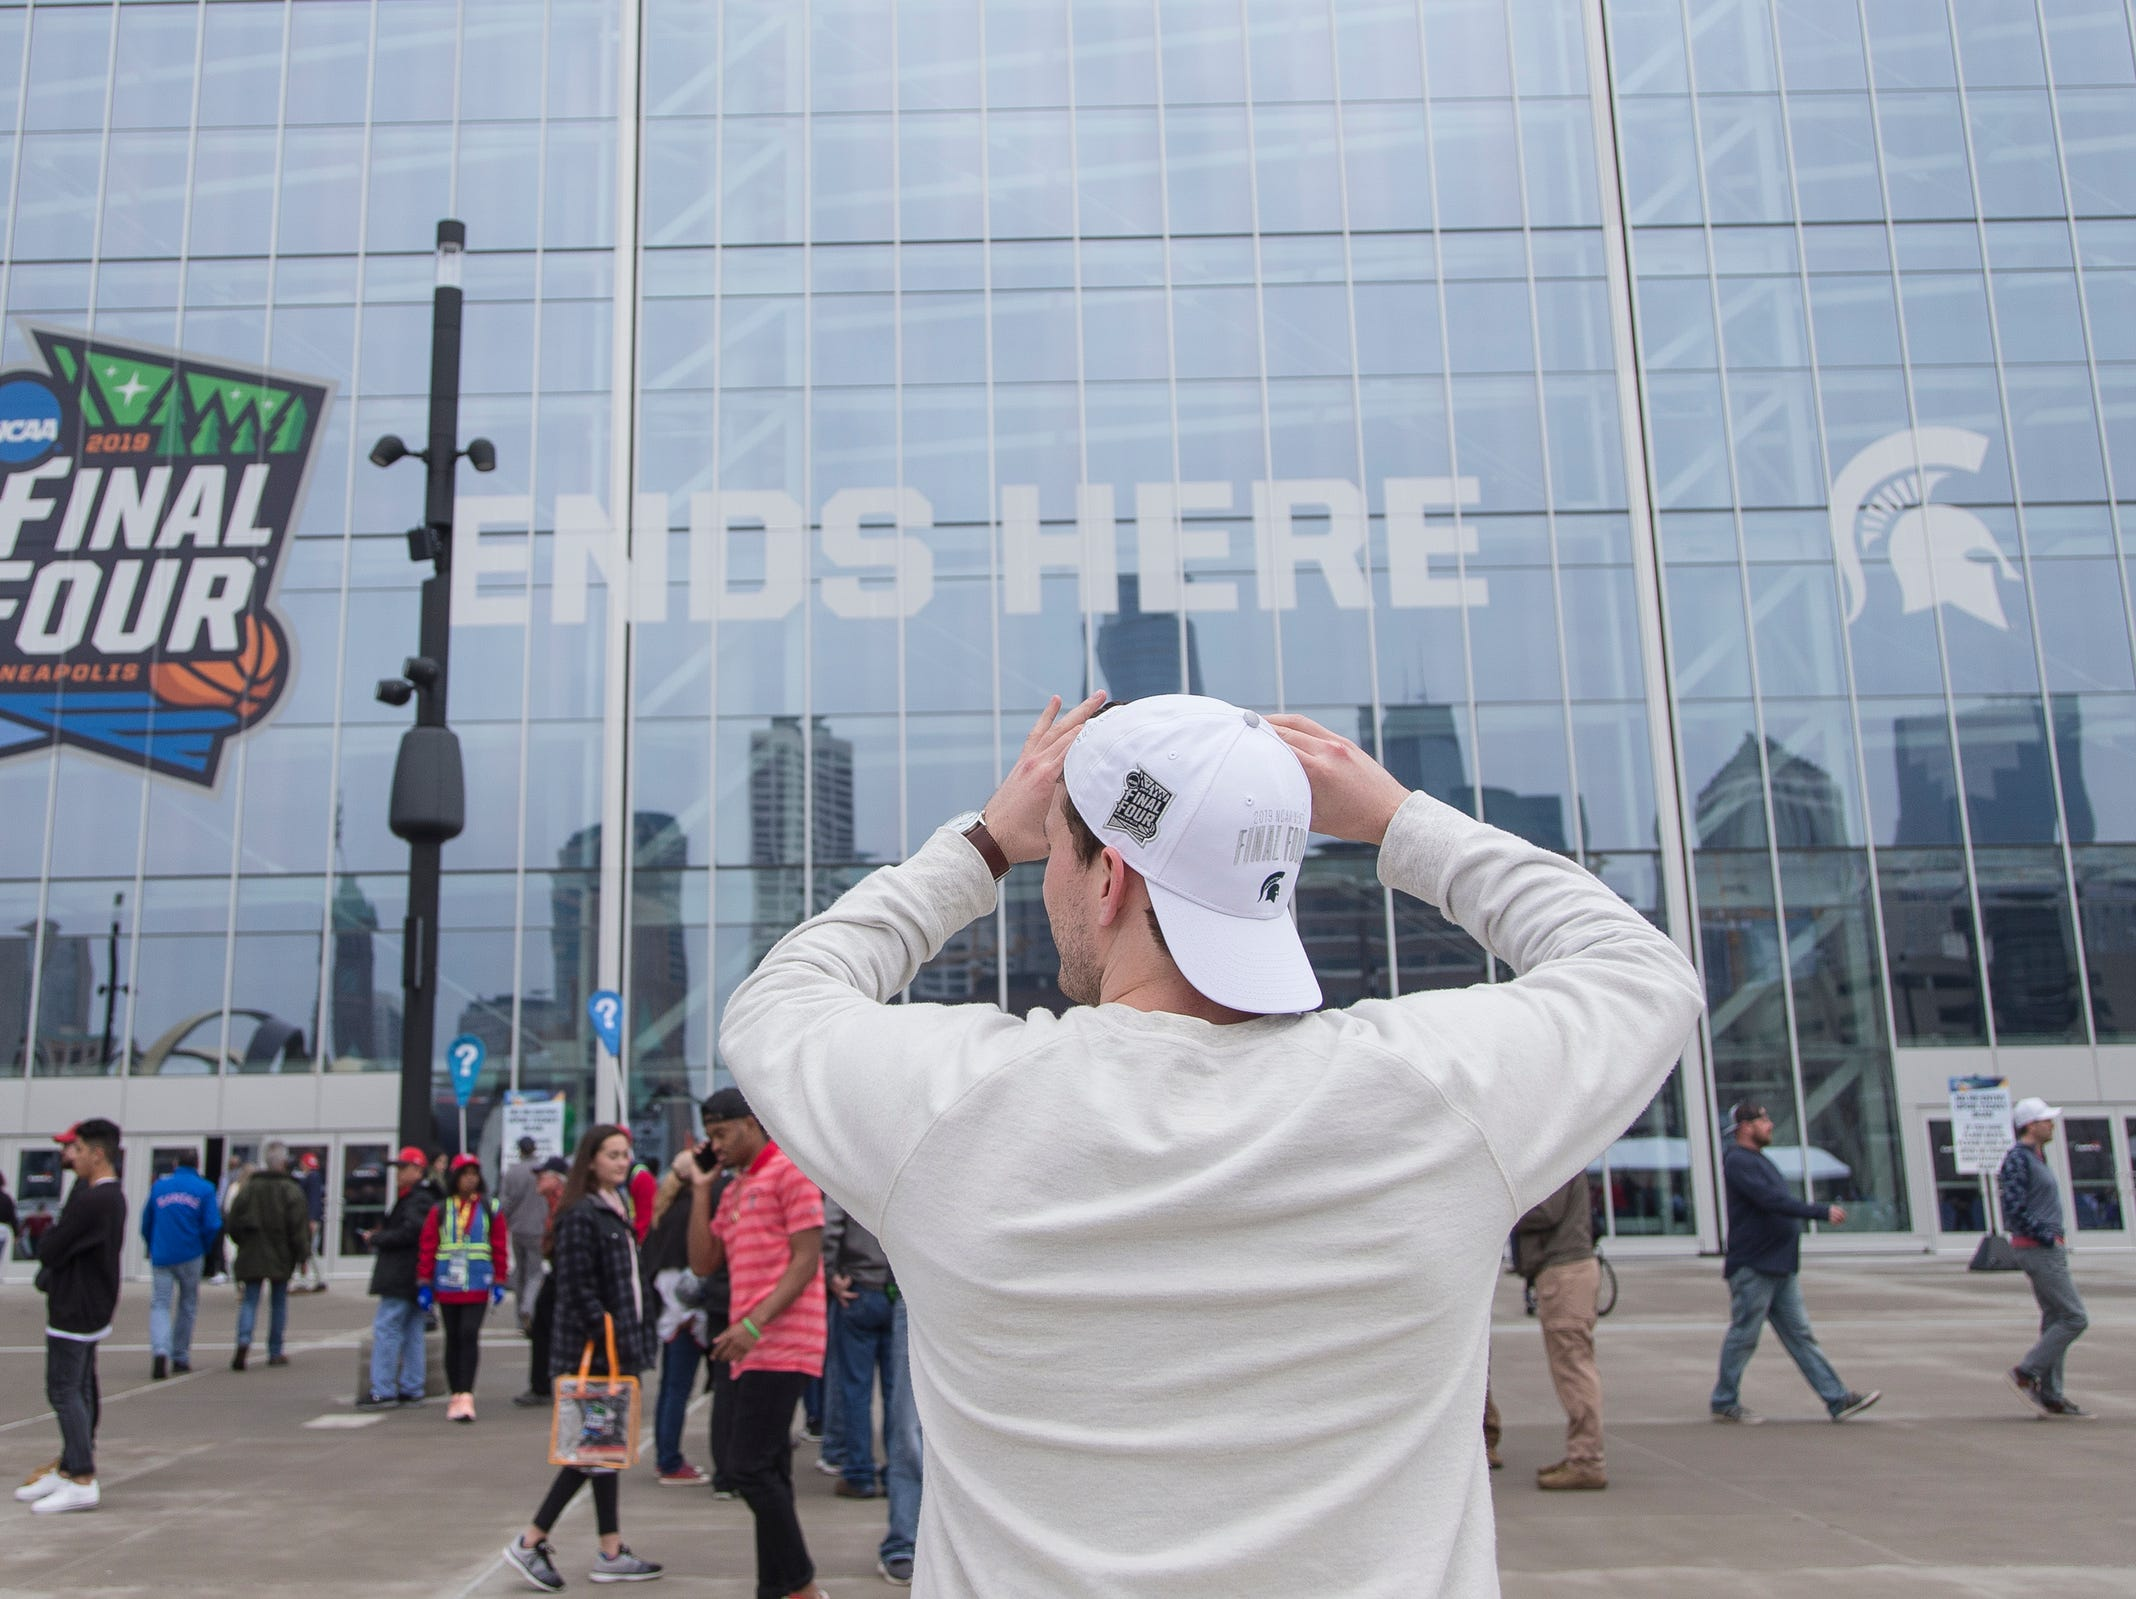 Michigan State alumnus John Venn of Milwaukee, Wis., takes a photo outside of the U.S. Bank Stadium in Minneapolis before the Final Four game against Texas Tech , Saturday, April 6, 2019.